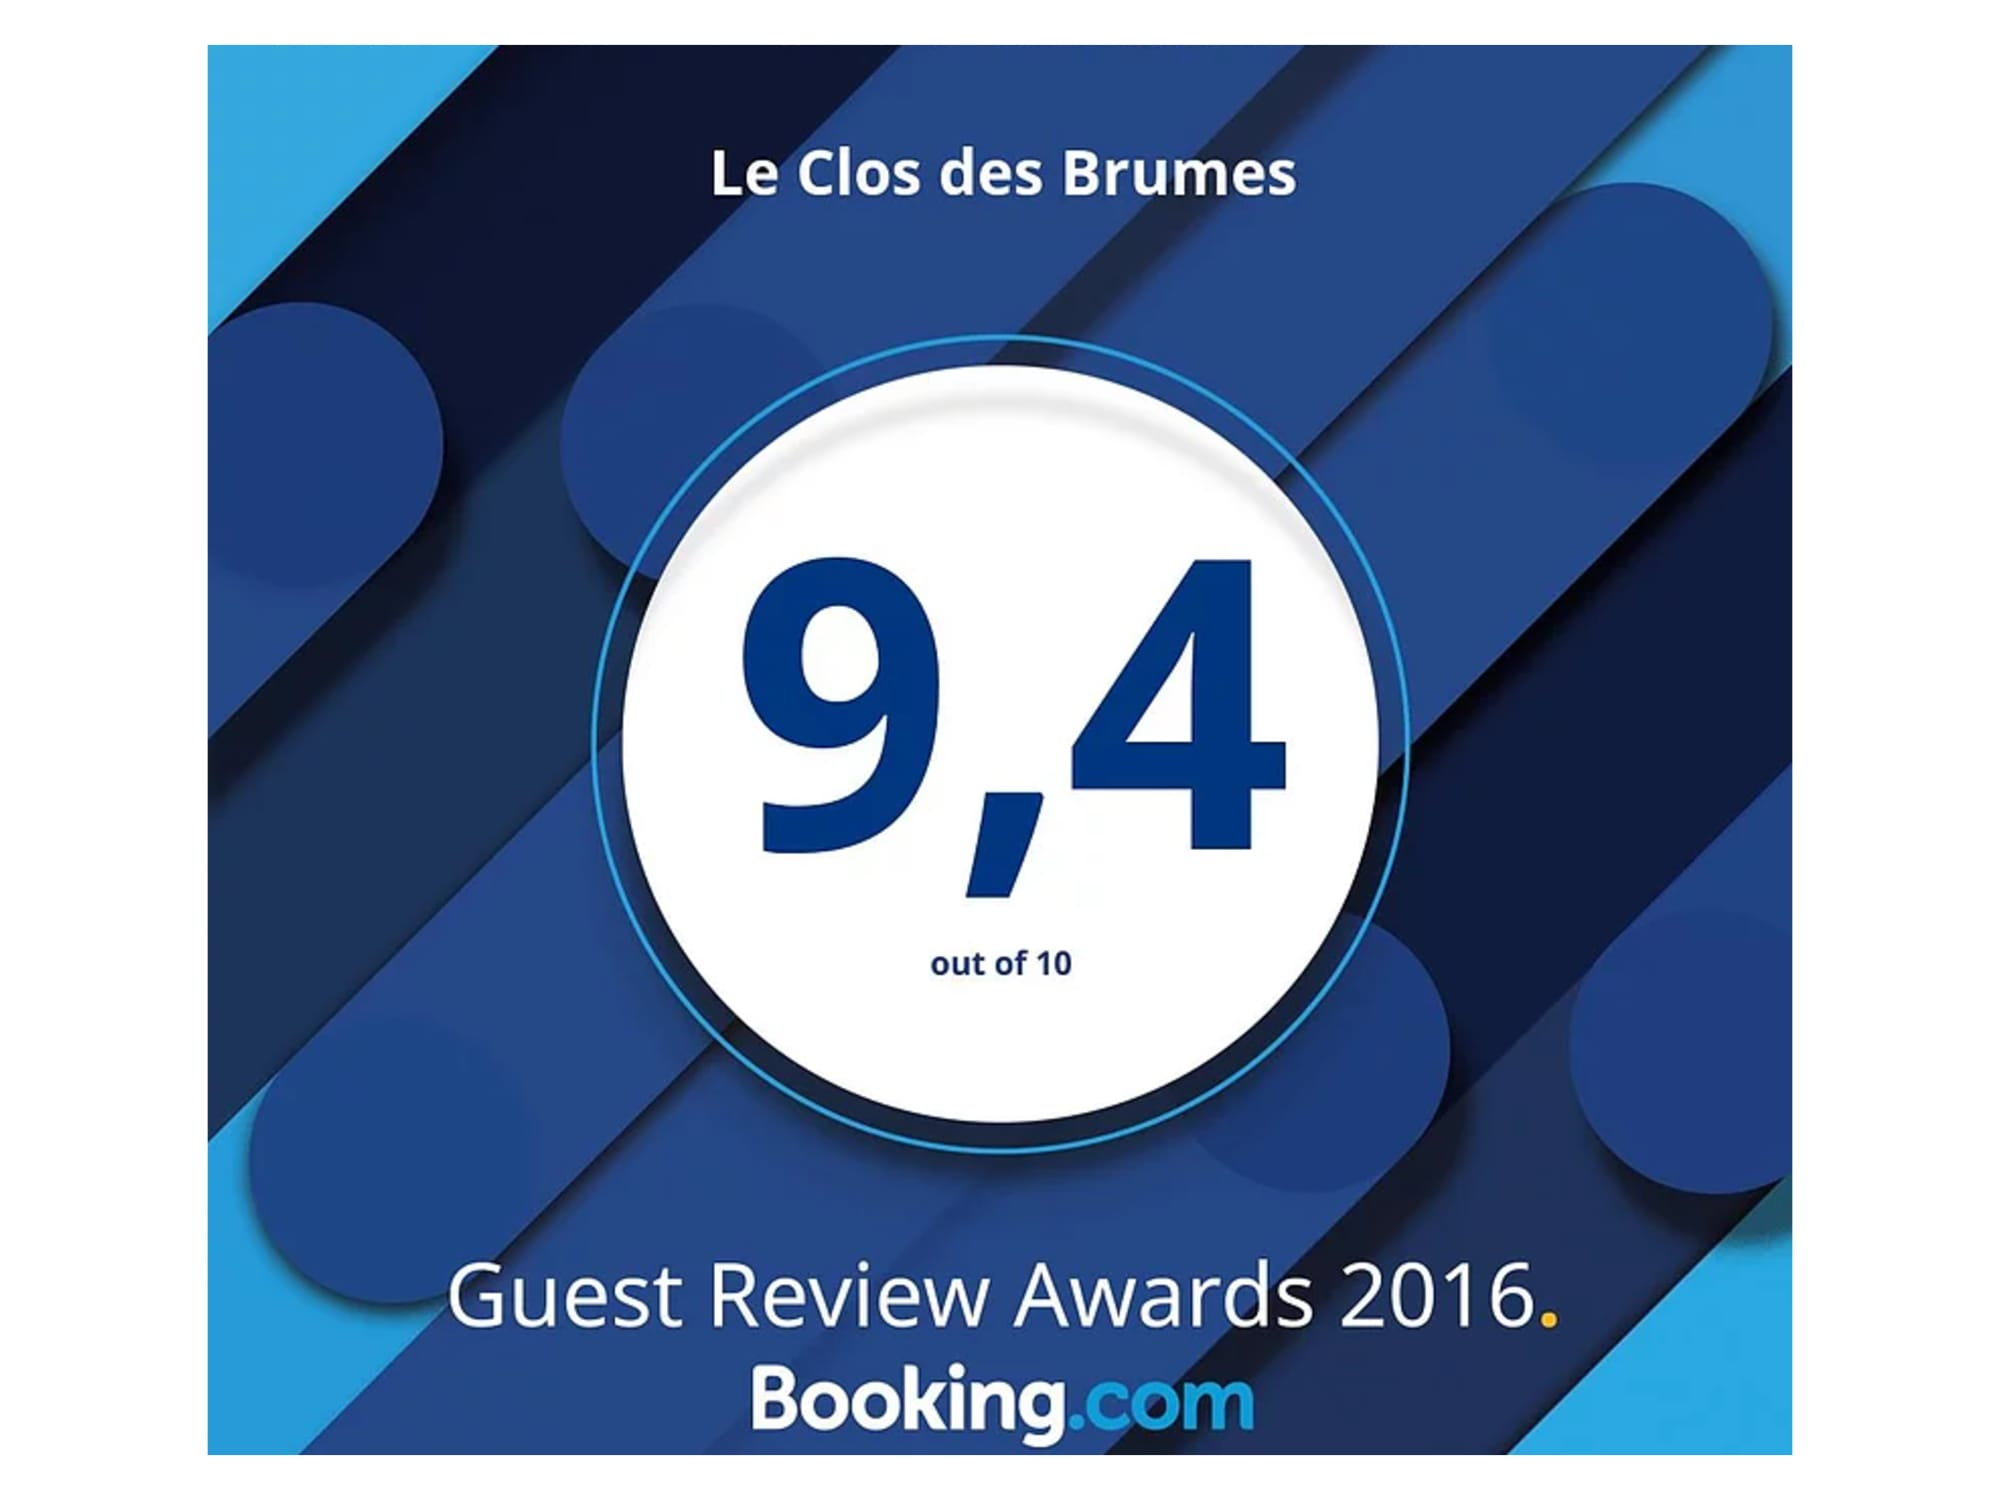 Guest Review Awards 2016.jpg